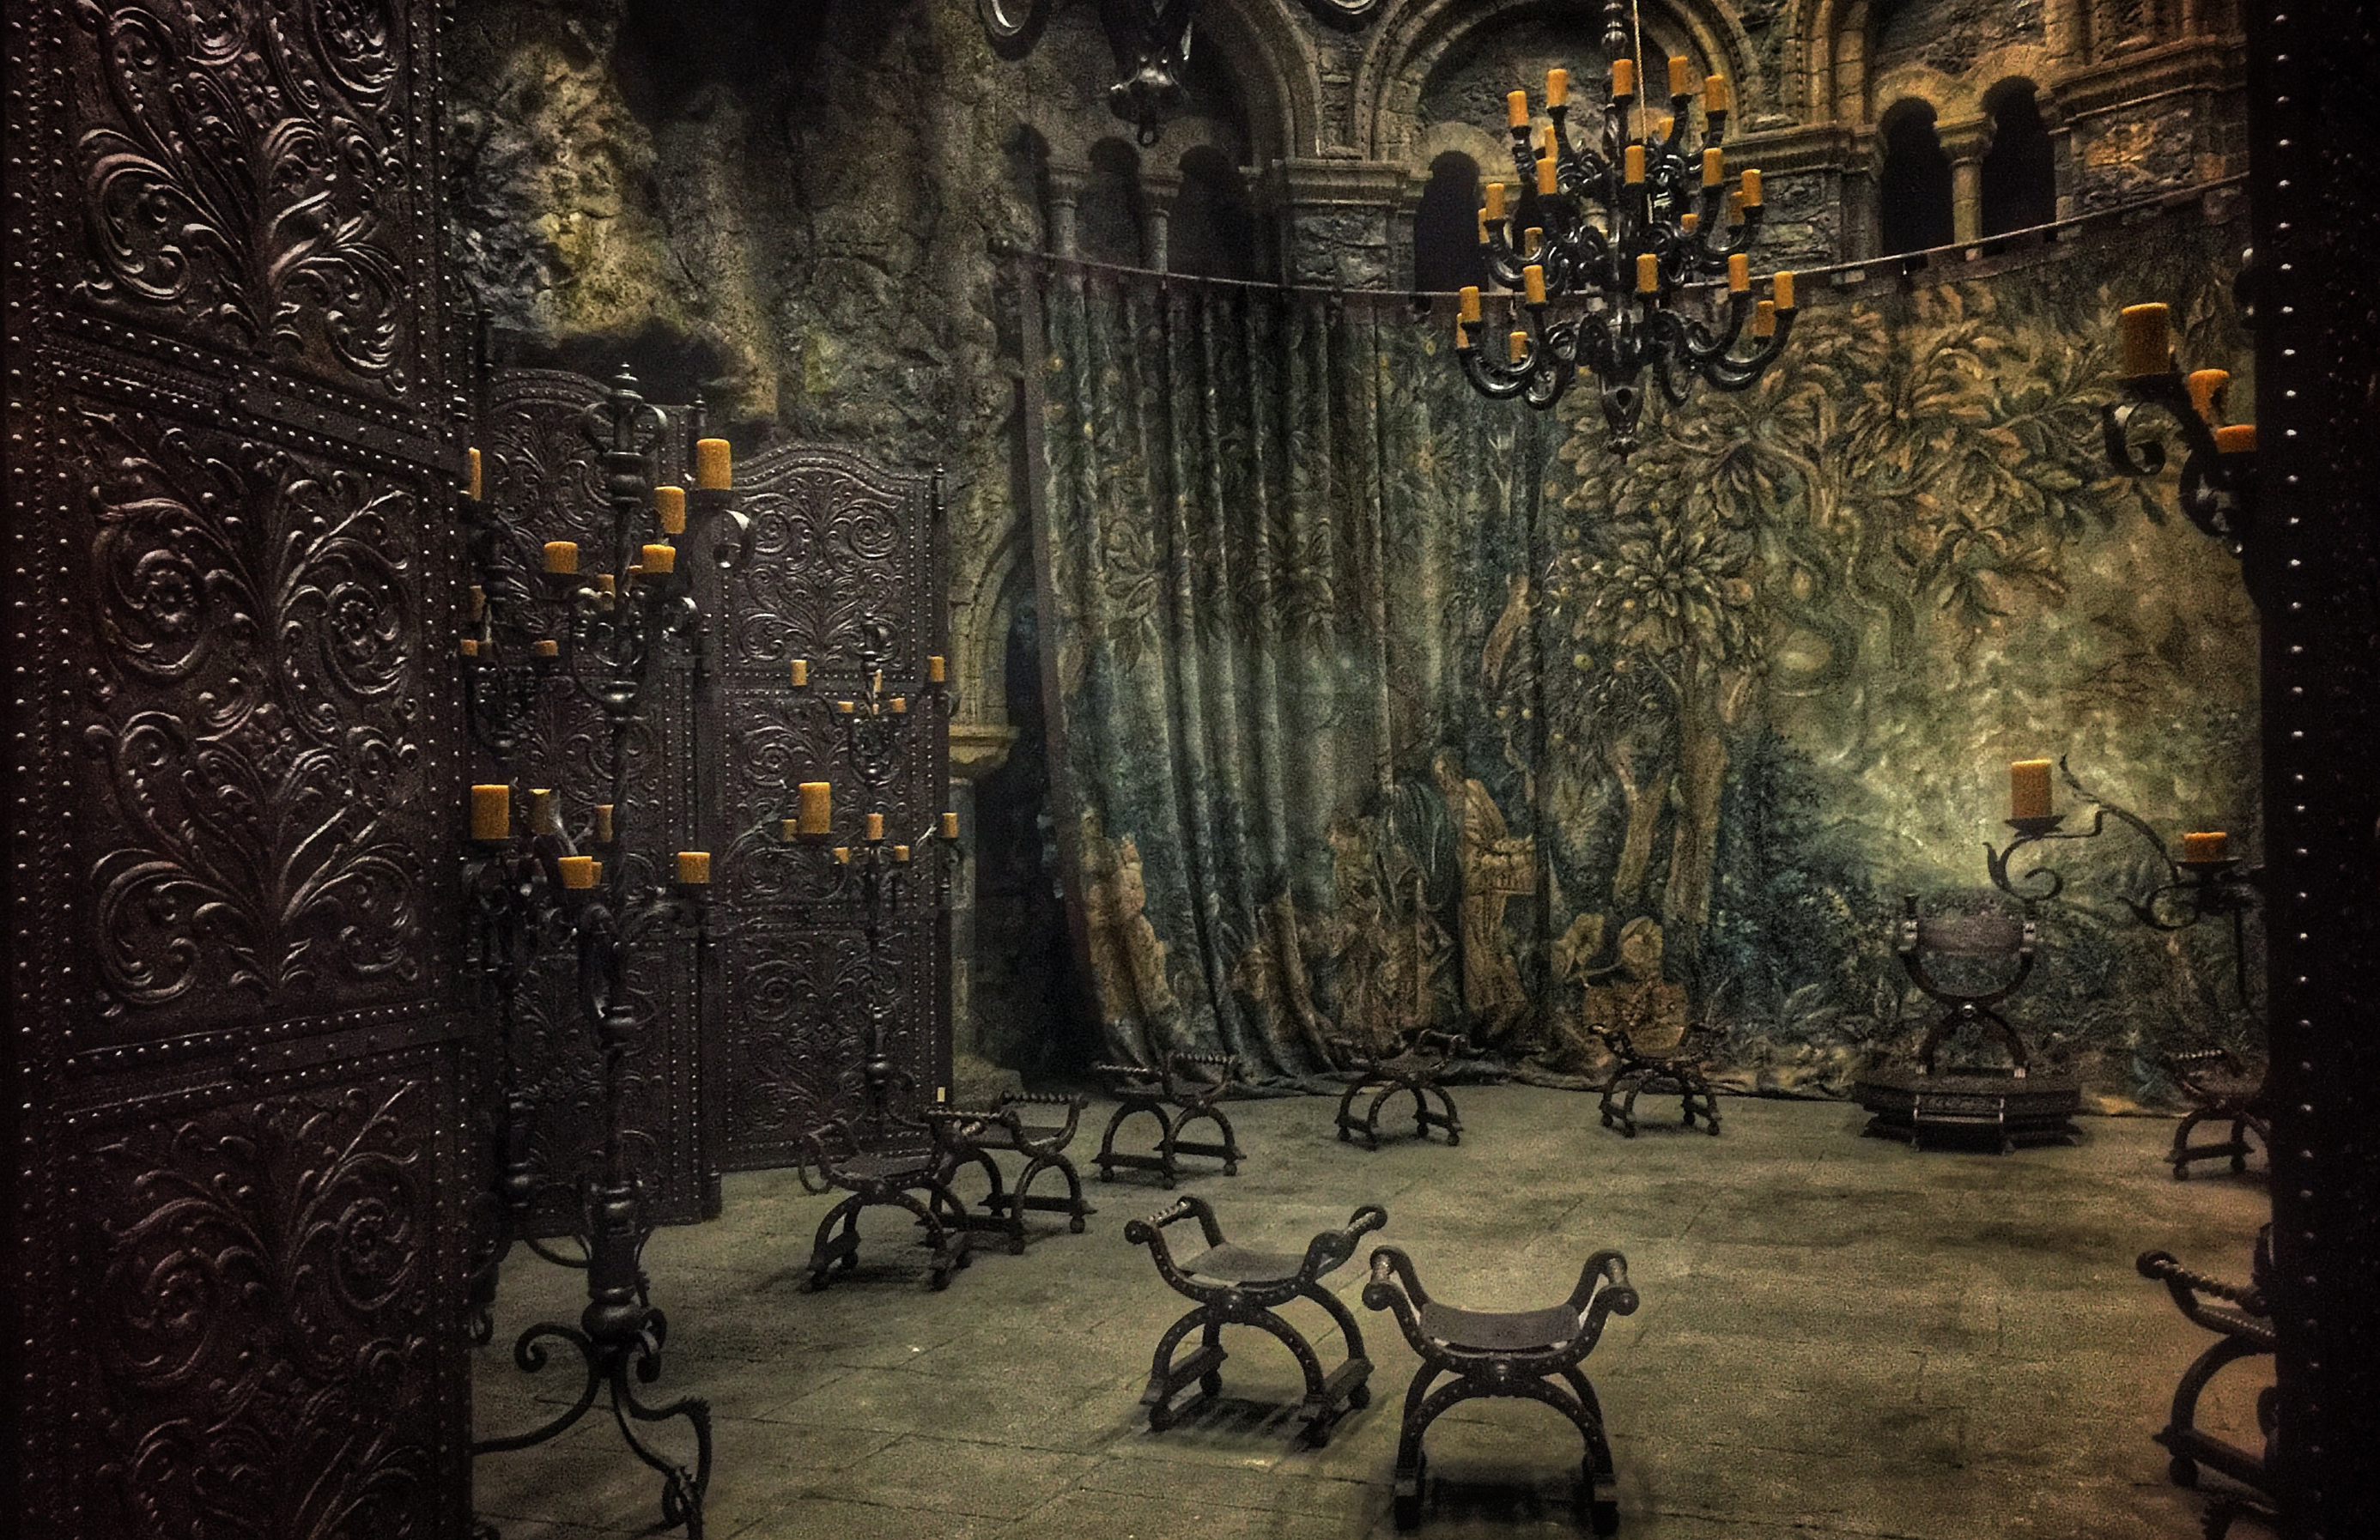 Tapestries and screens at Holyrood mary queen of scots film sets